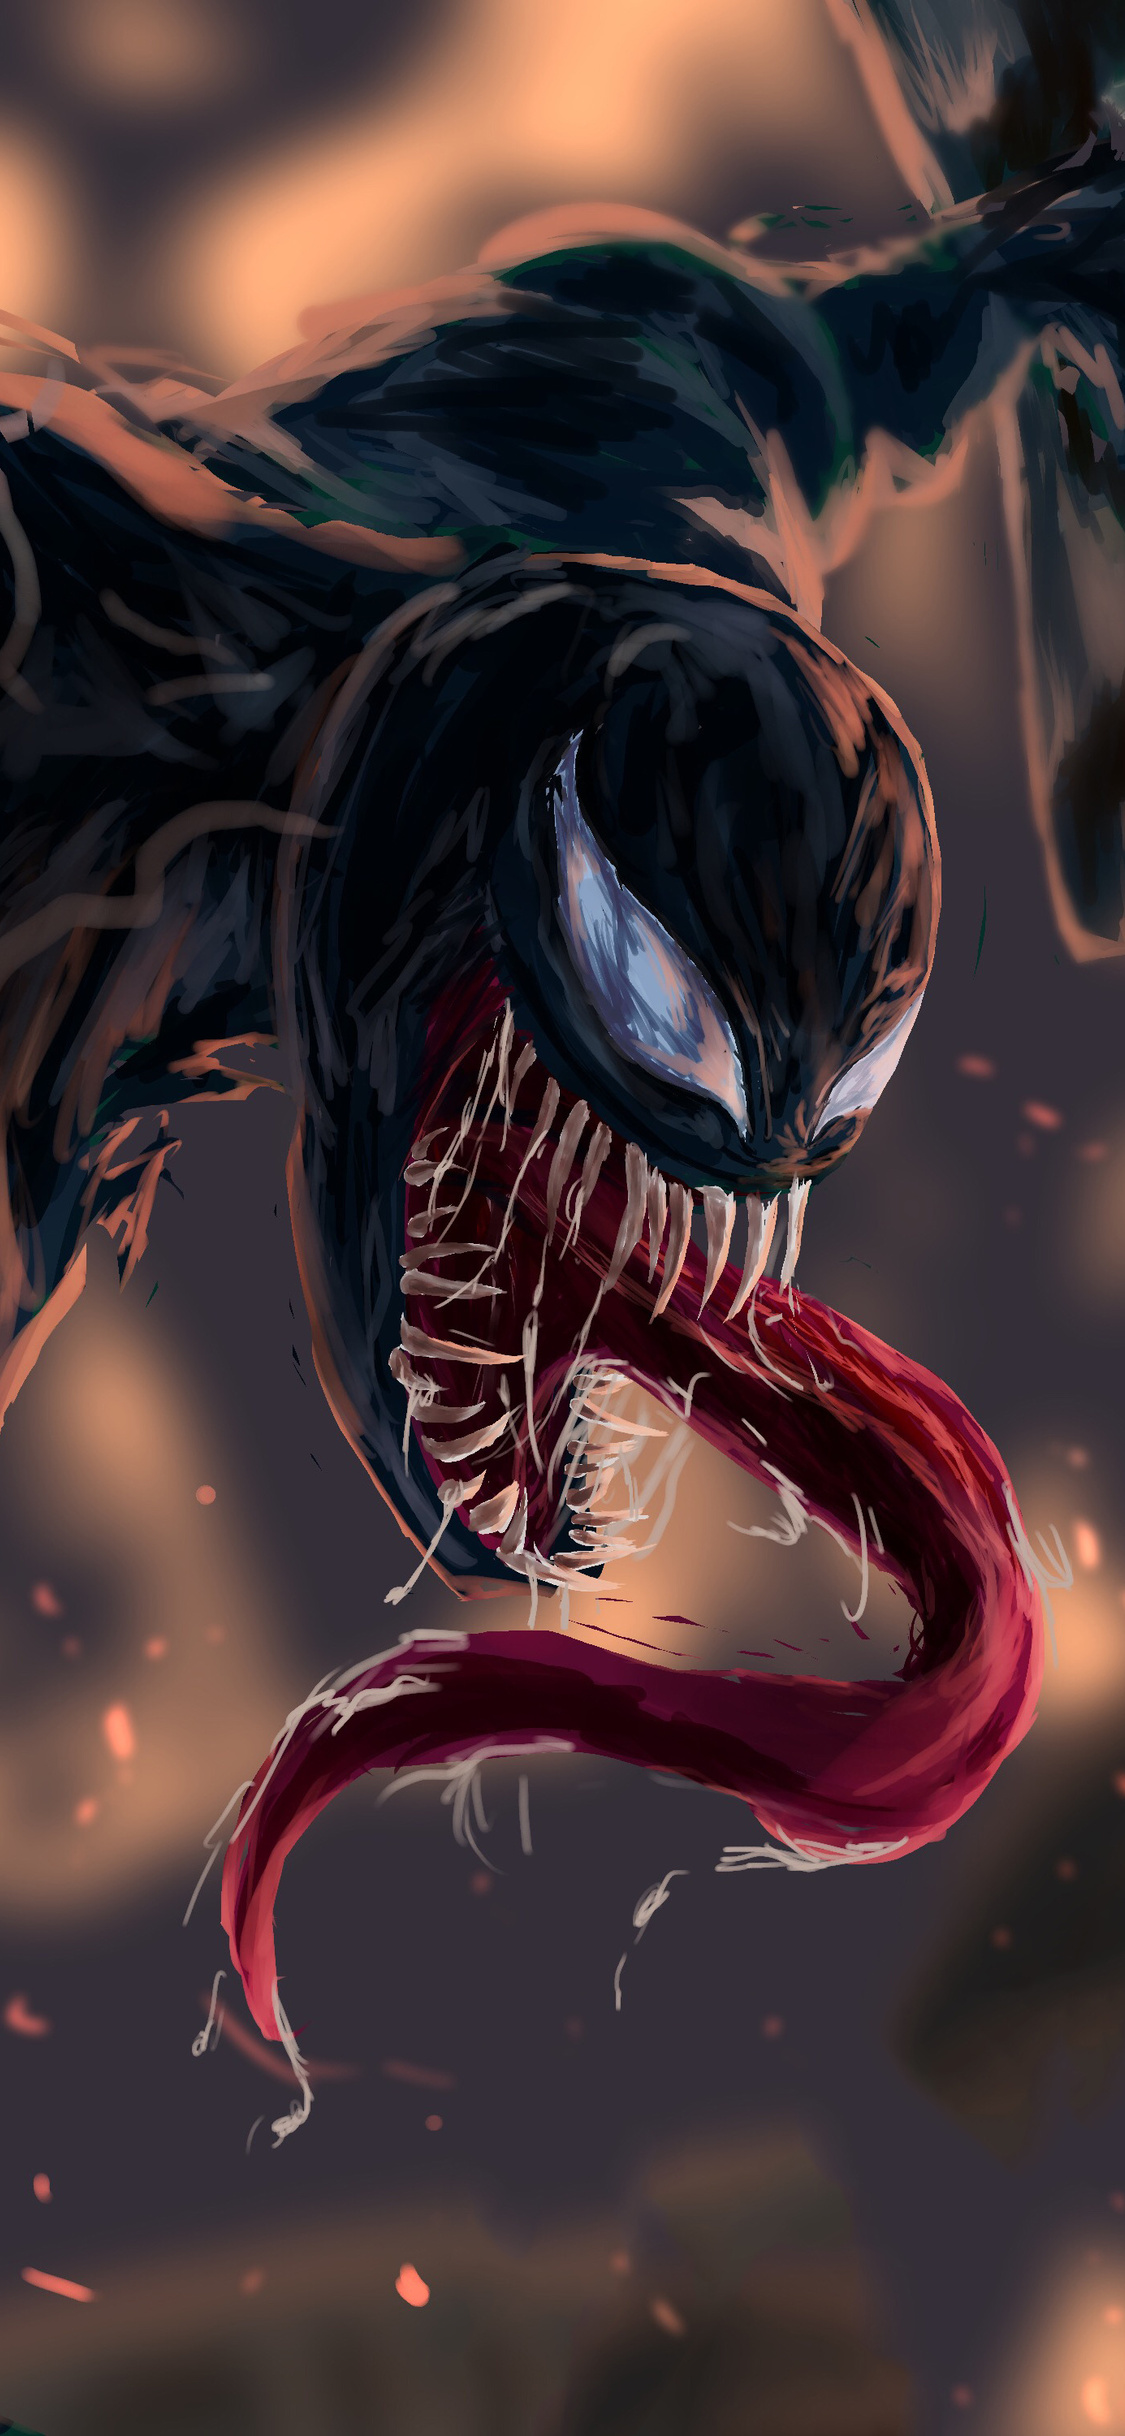 1125x2436 Venom 4k Fan Artwork Iphone Xsiphone 10iphone X Hd 4k